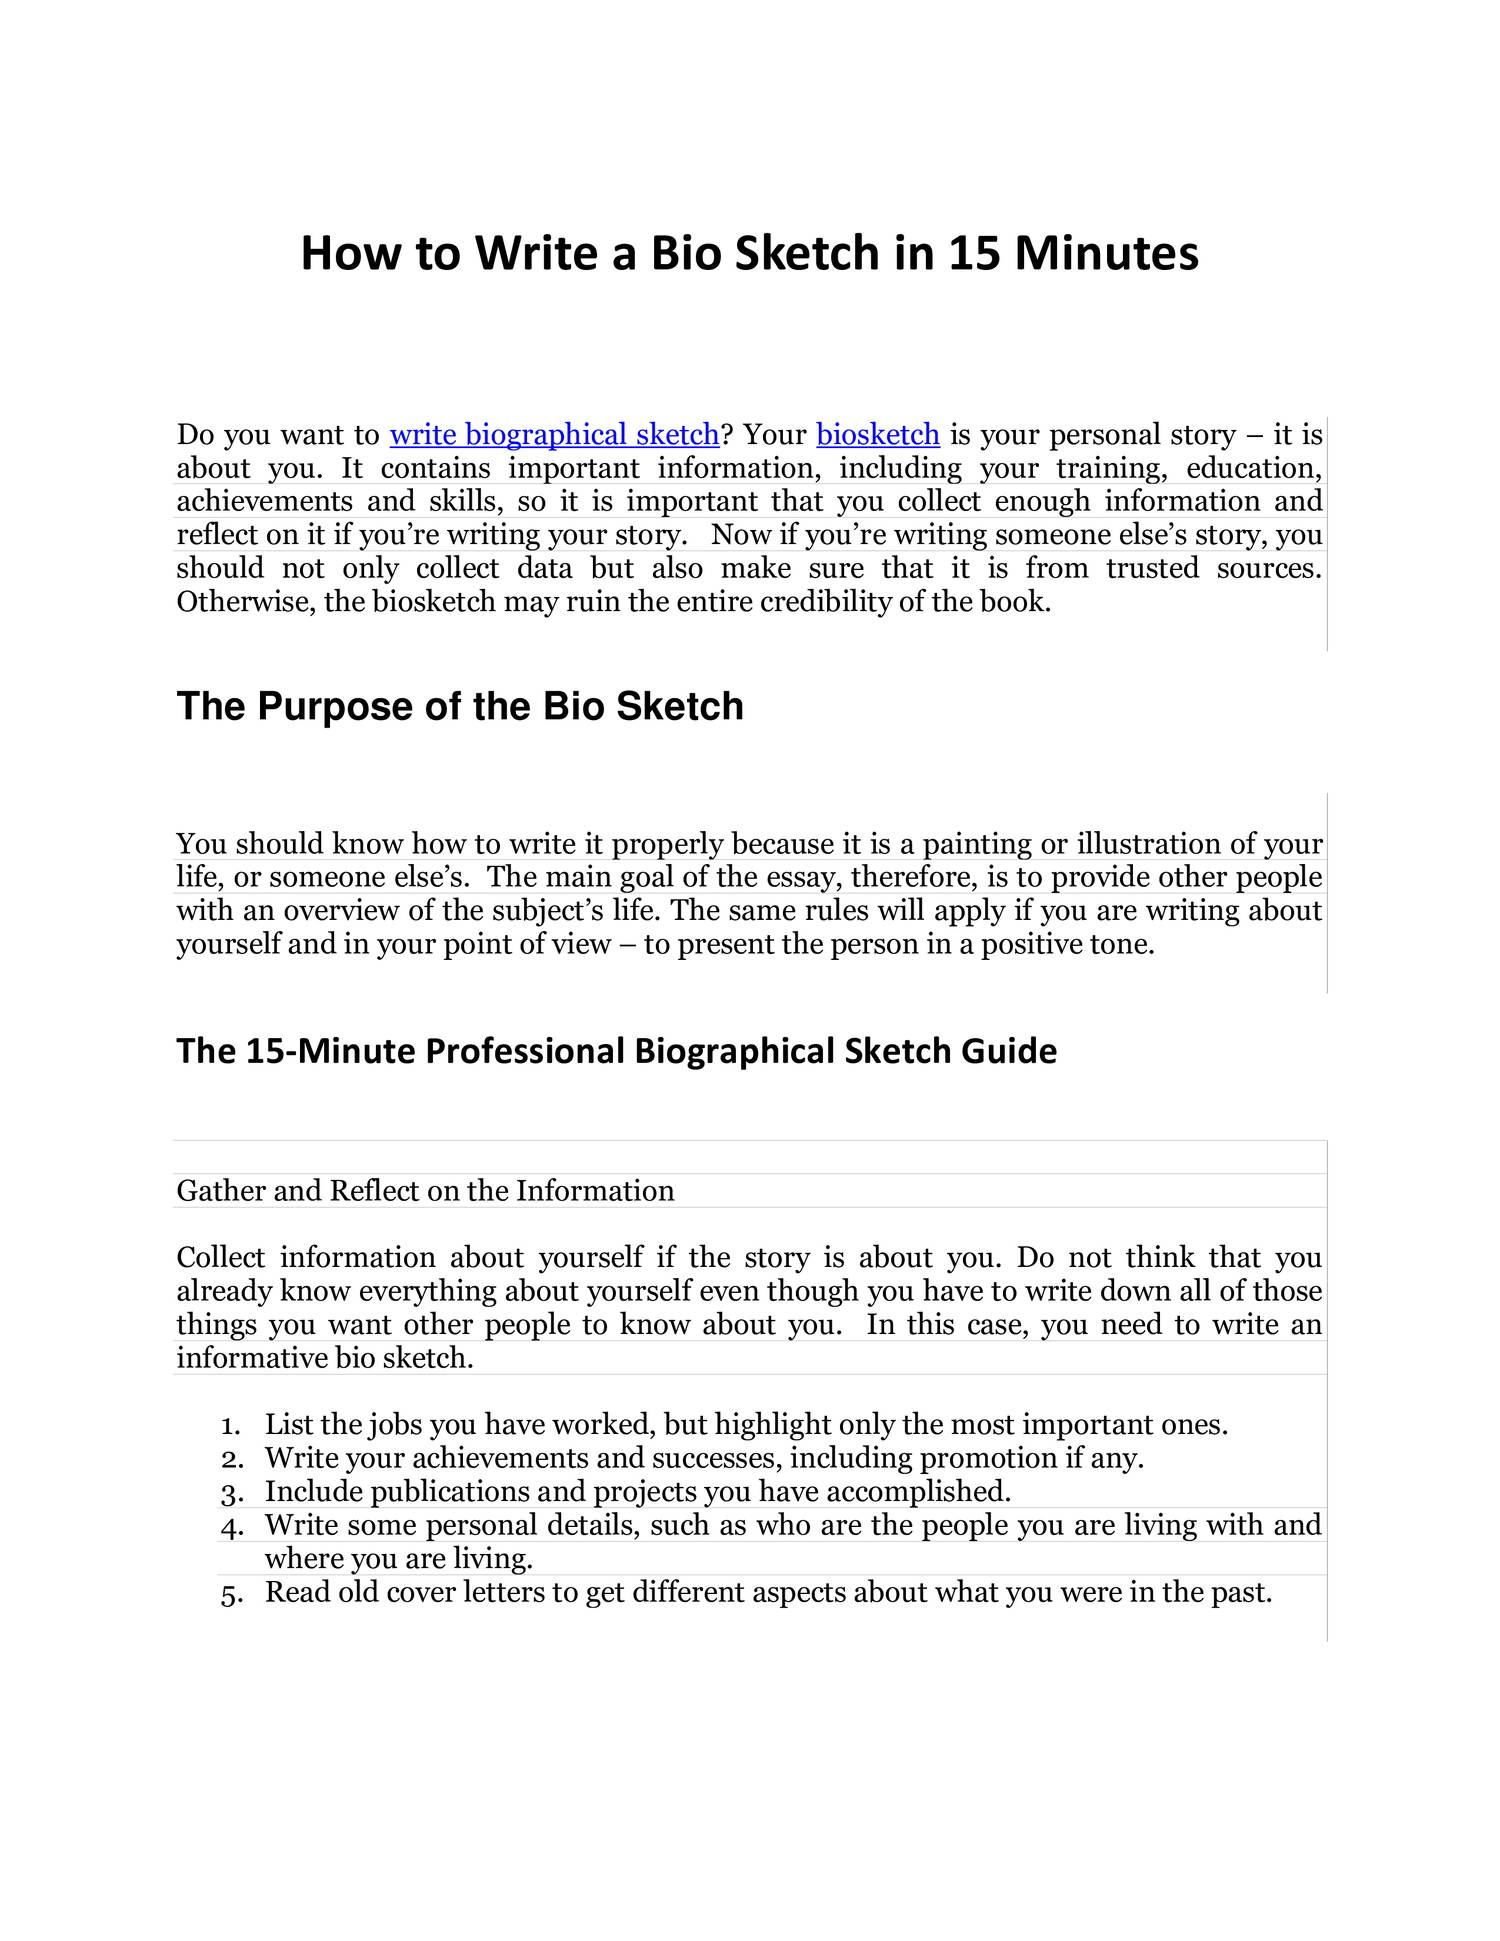 how to write a biographical sketch about yourself As for you to effectively promote yourself, it is important that you know the best way on how to create a biography sketchthe main focus of your biography sketch would be to explain who you are, what you can do and what you intend to contribute – basically, this is an overview of your academic or professional life.